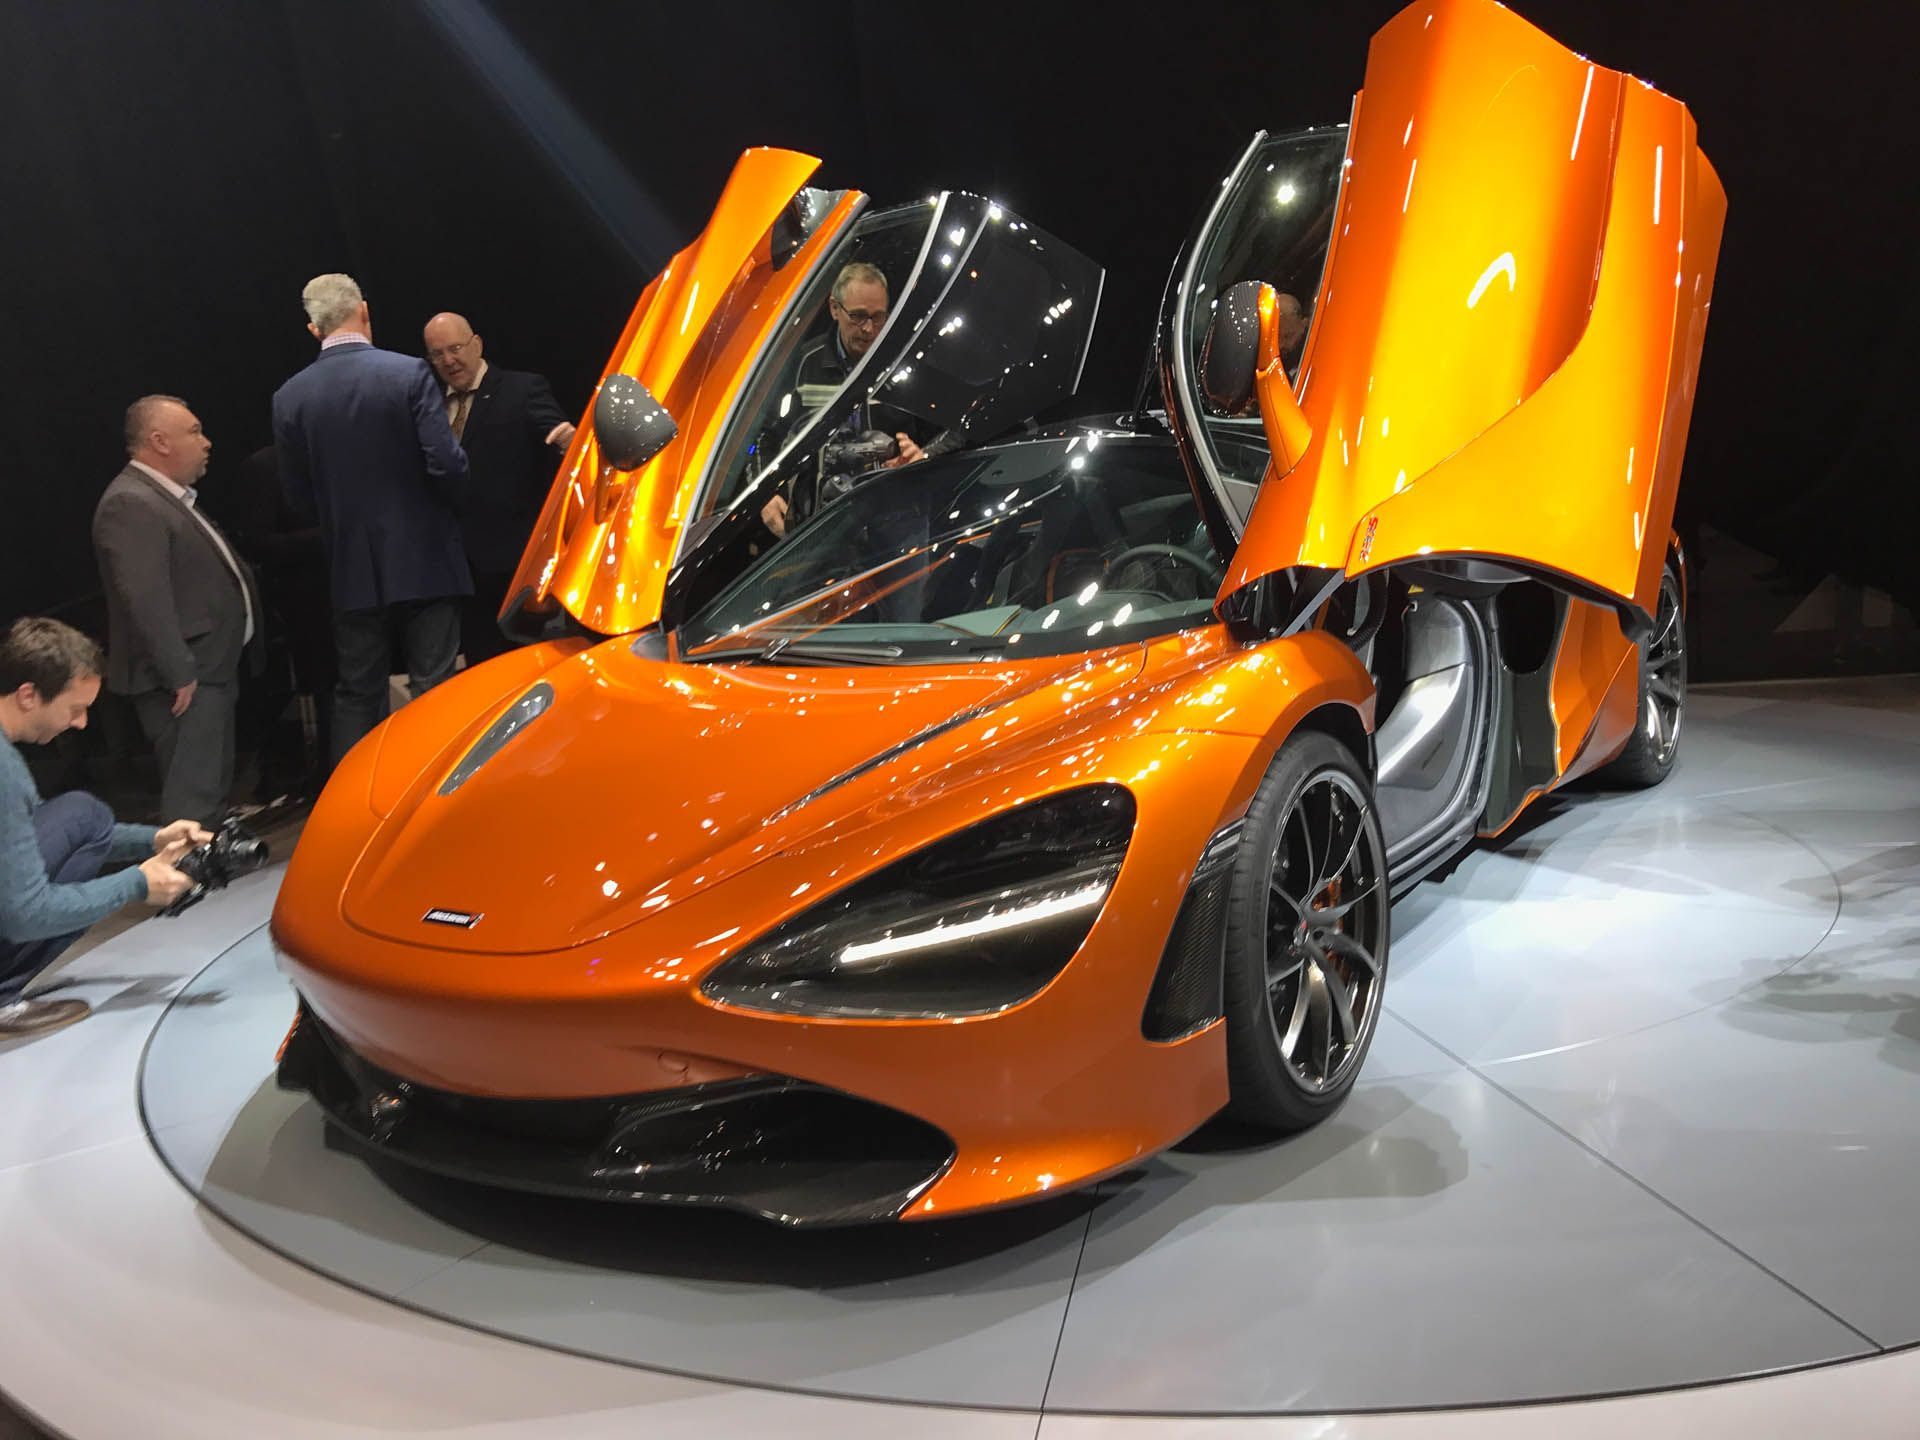 The 2018 McLaren 720S has 15 air inlets, and here's what